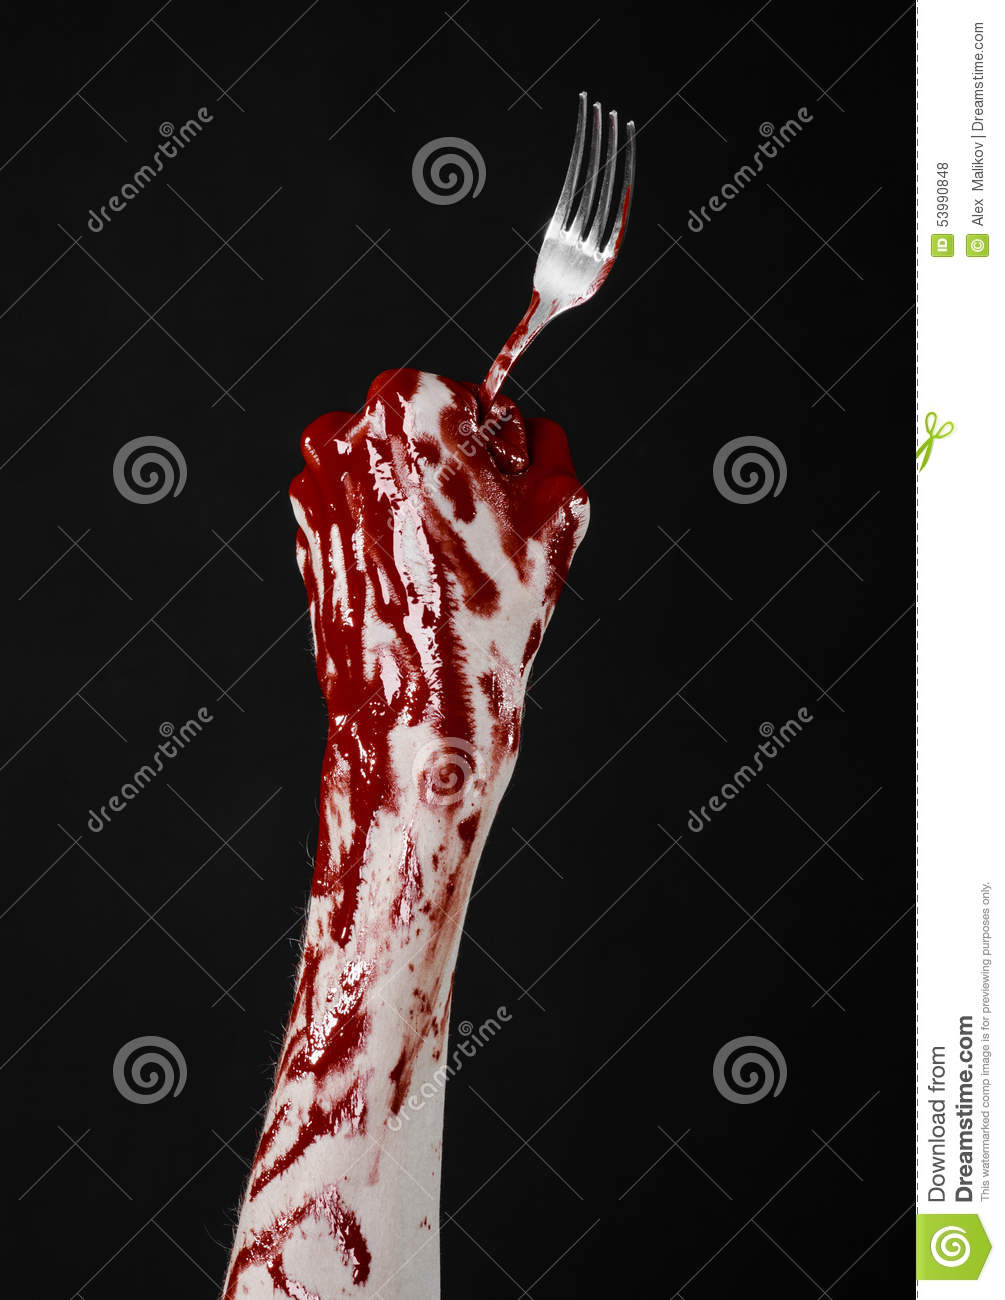 bloody hand holding - photo #46